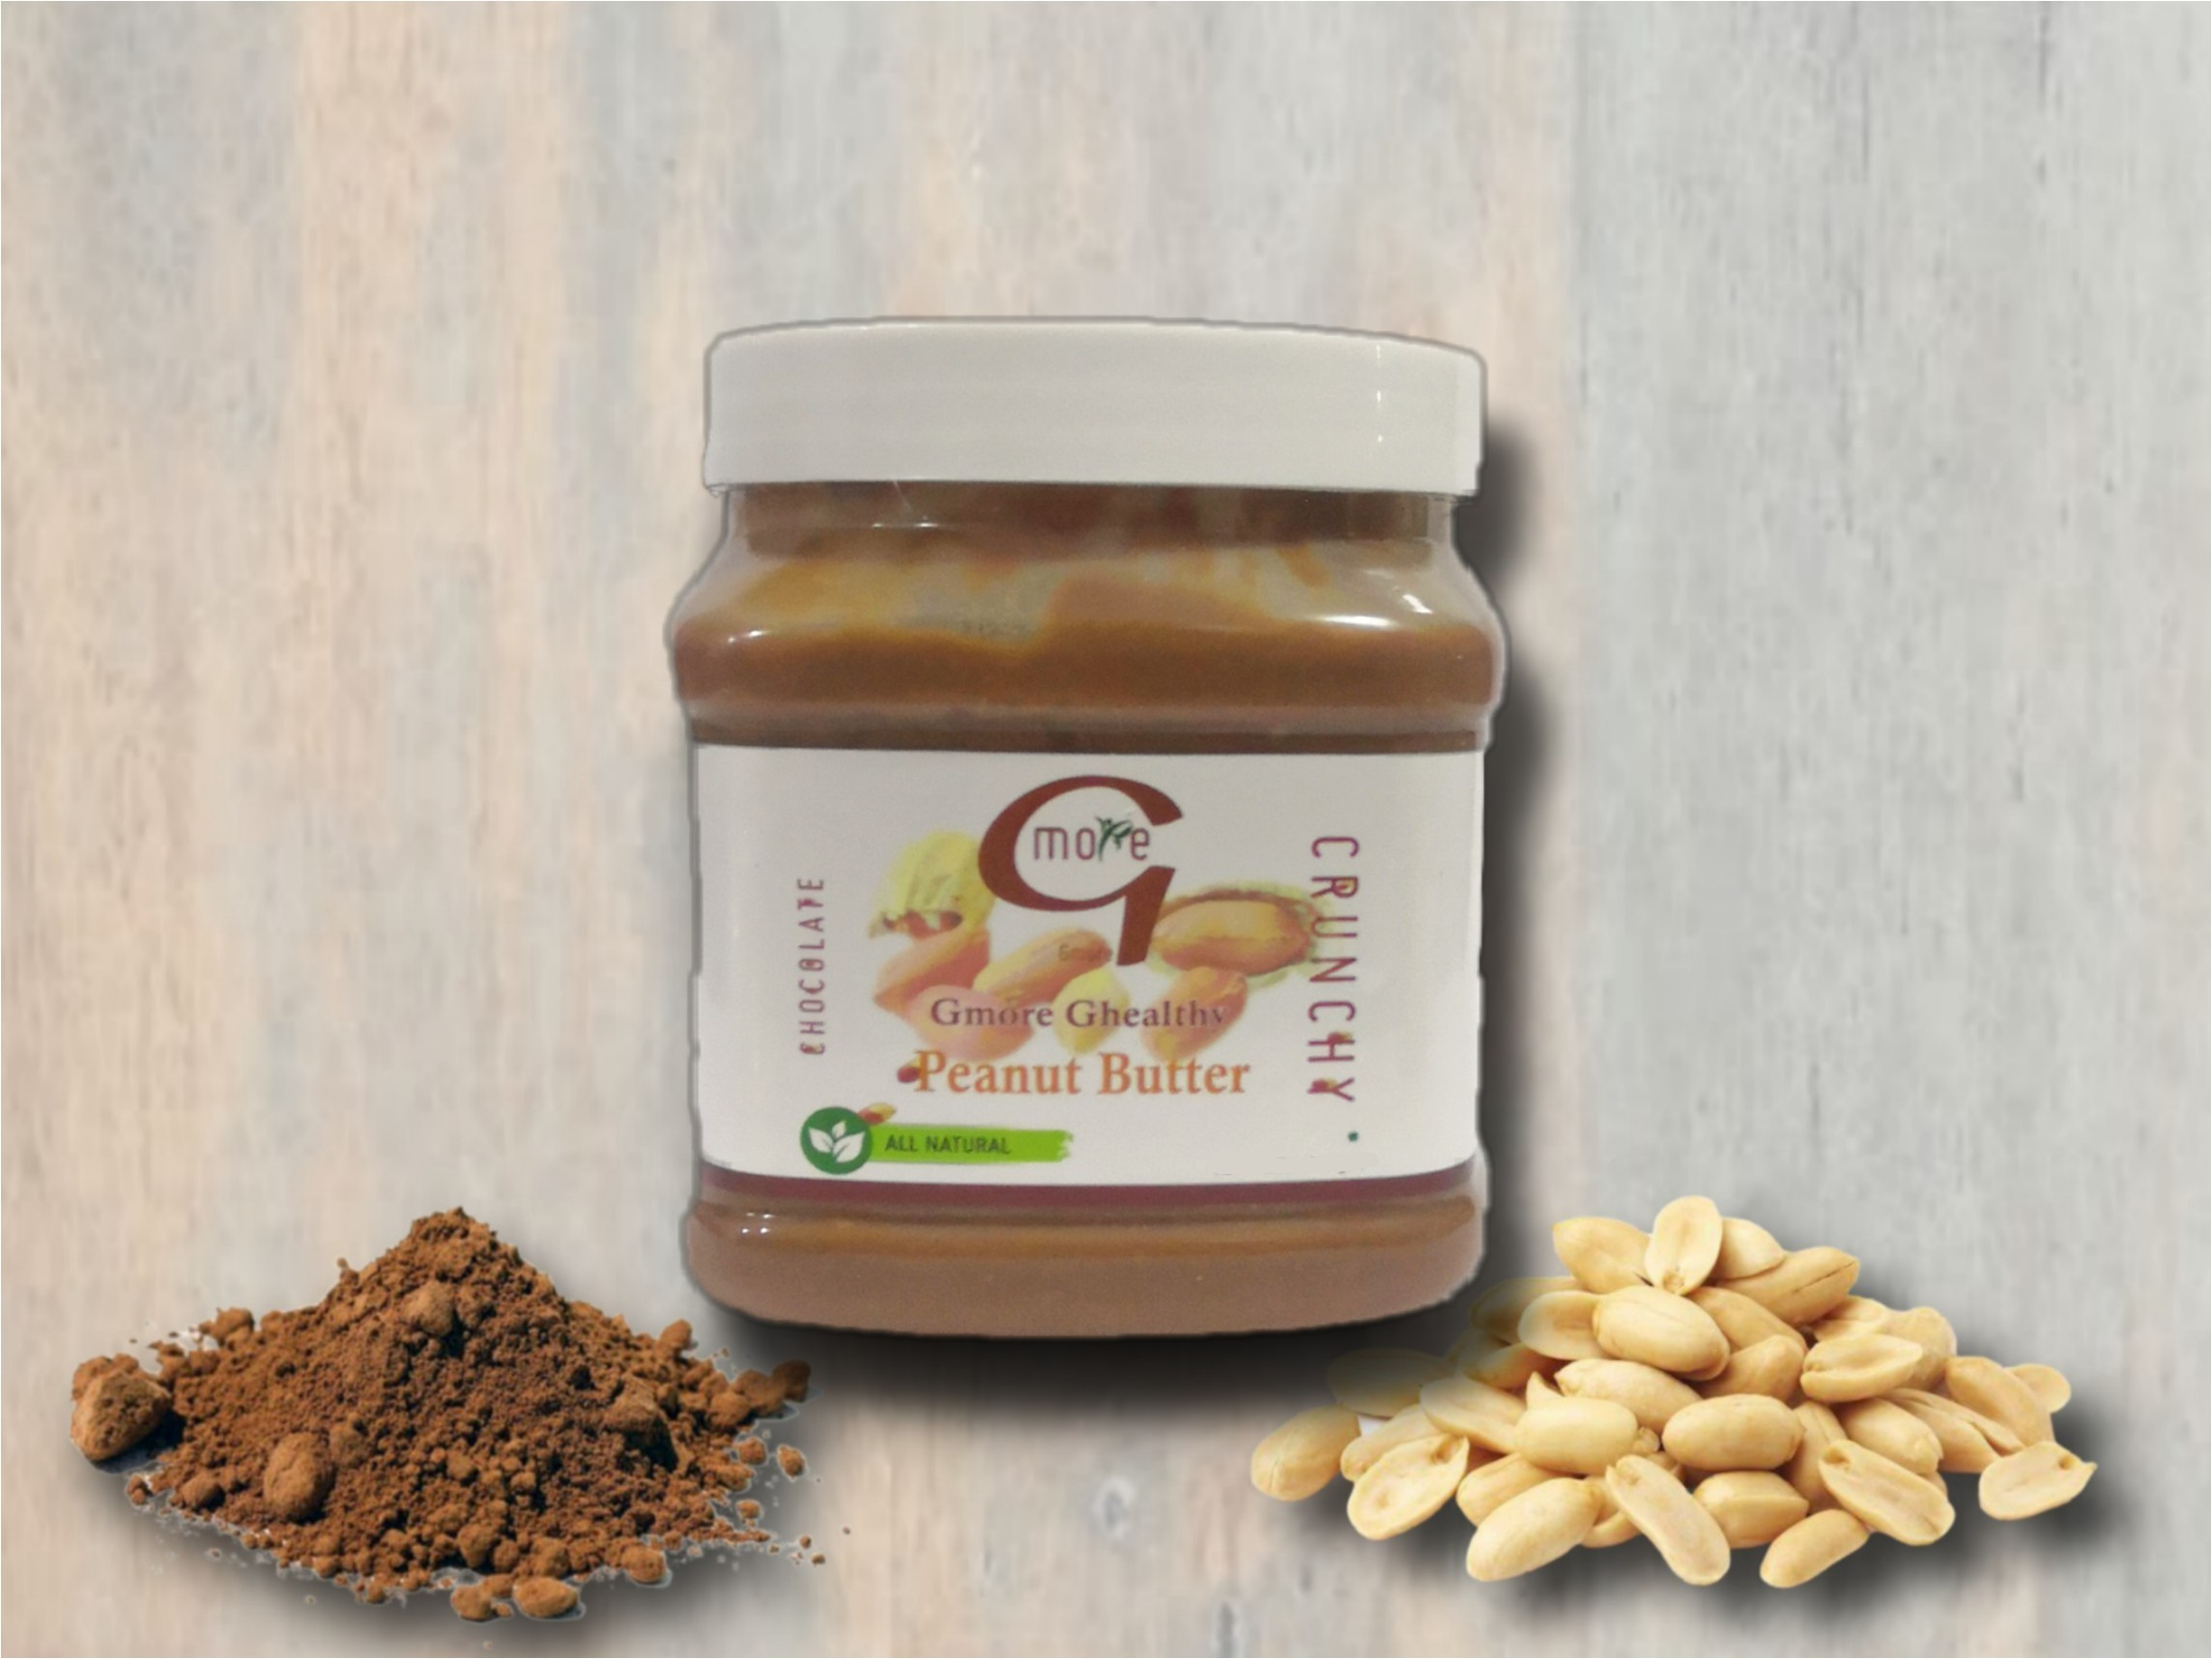 chocolate-crunchy-peanut-butter-950g